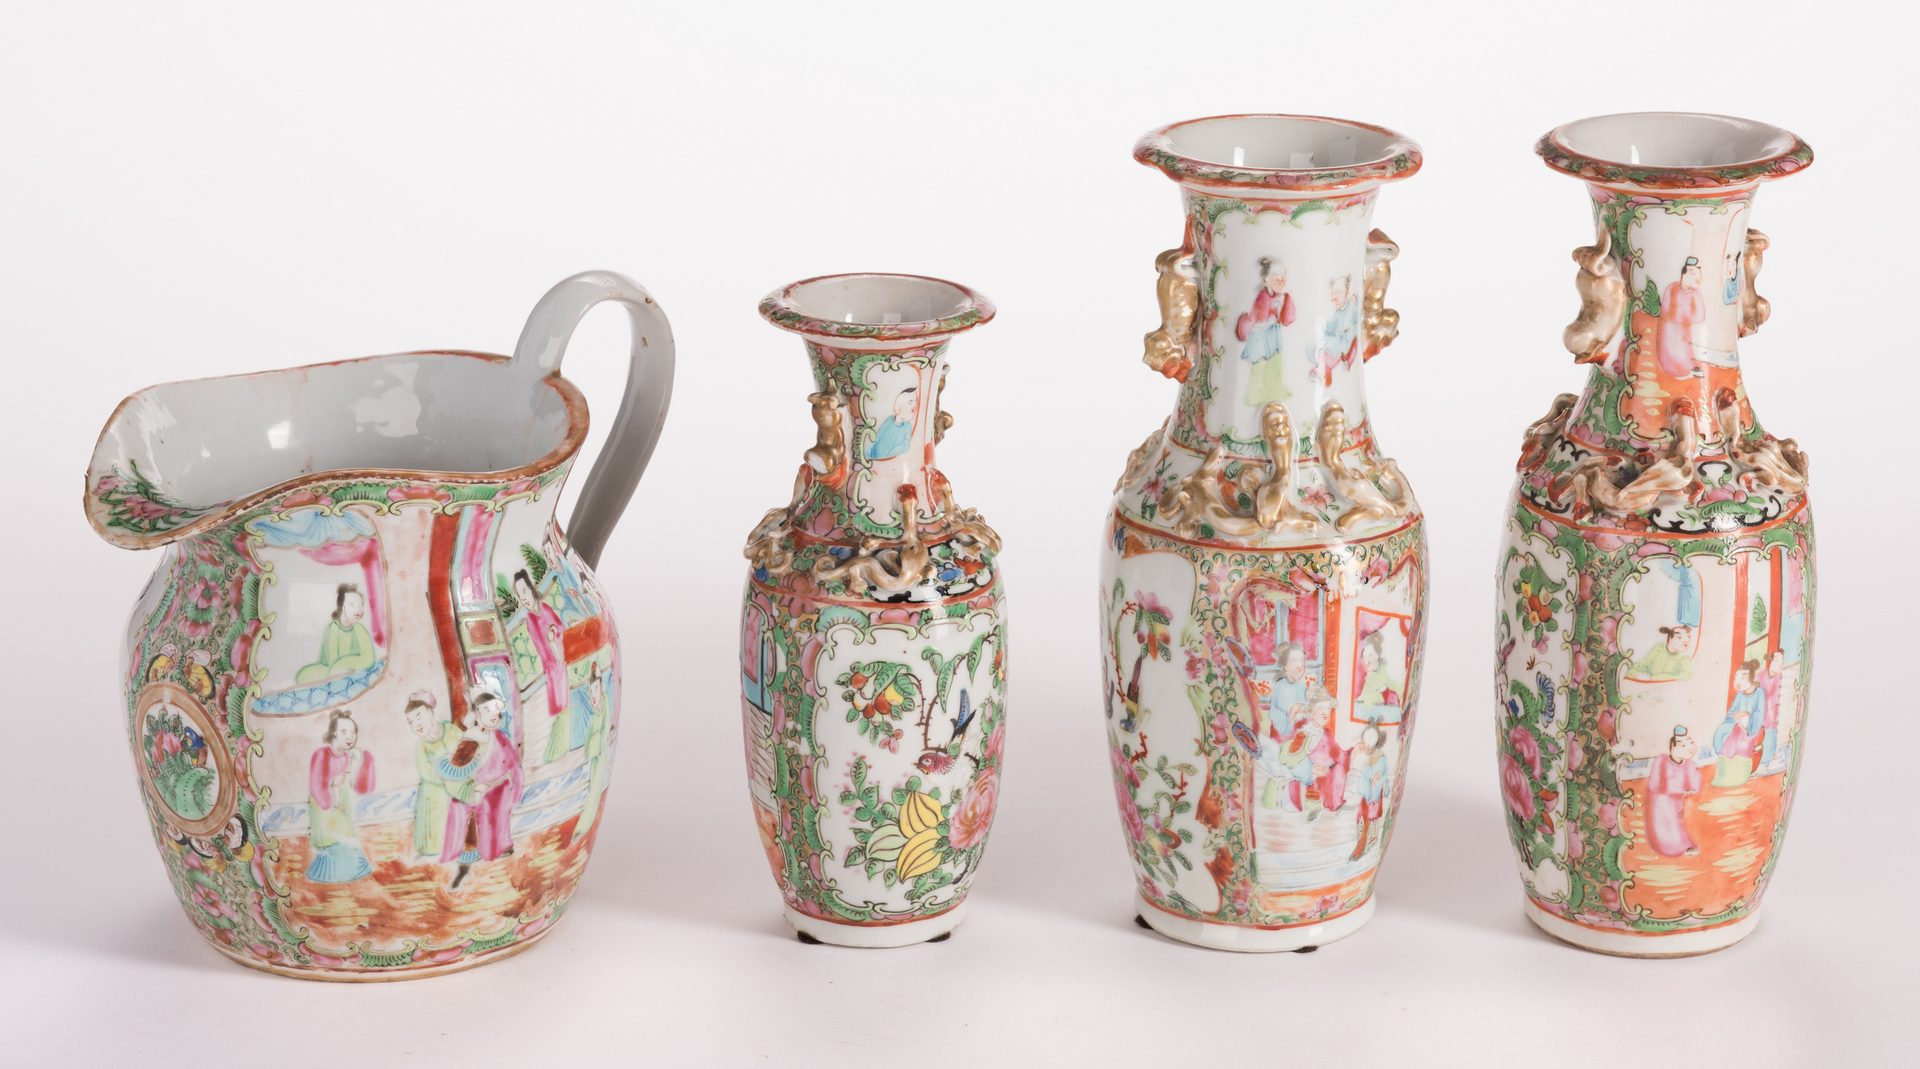 Lot 137: 3 Chinese Rose Medallion Vases & Pitcher, 4 Items Total